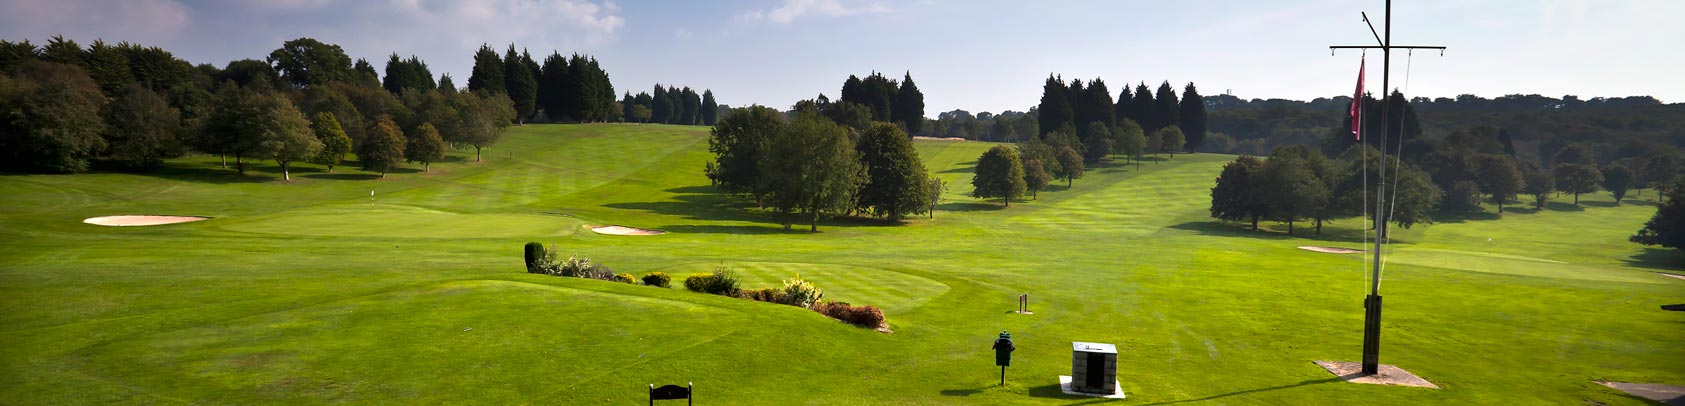 Wedding Venues Cardiff South Wales, Golf Club Wales